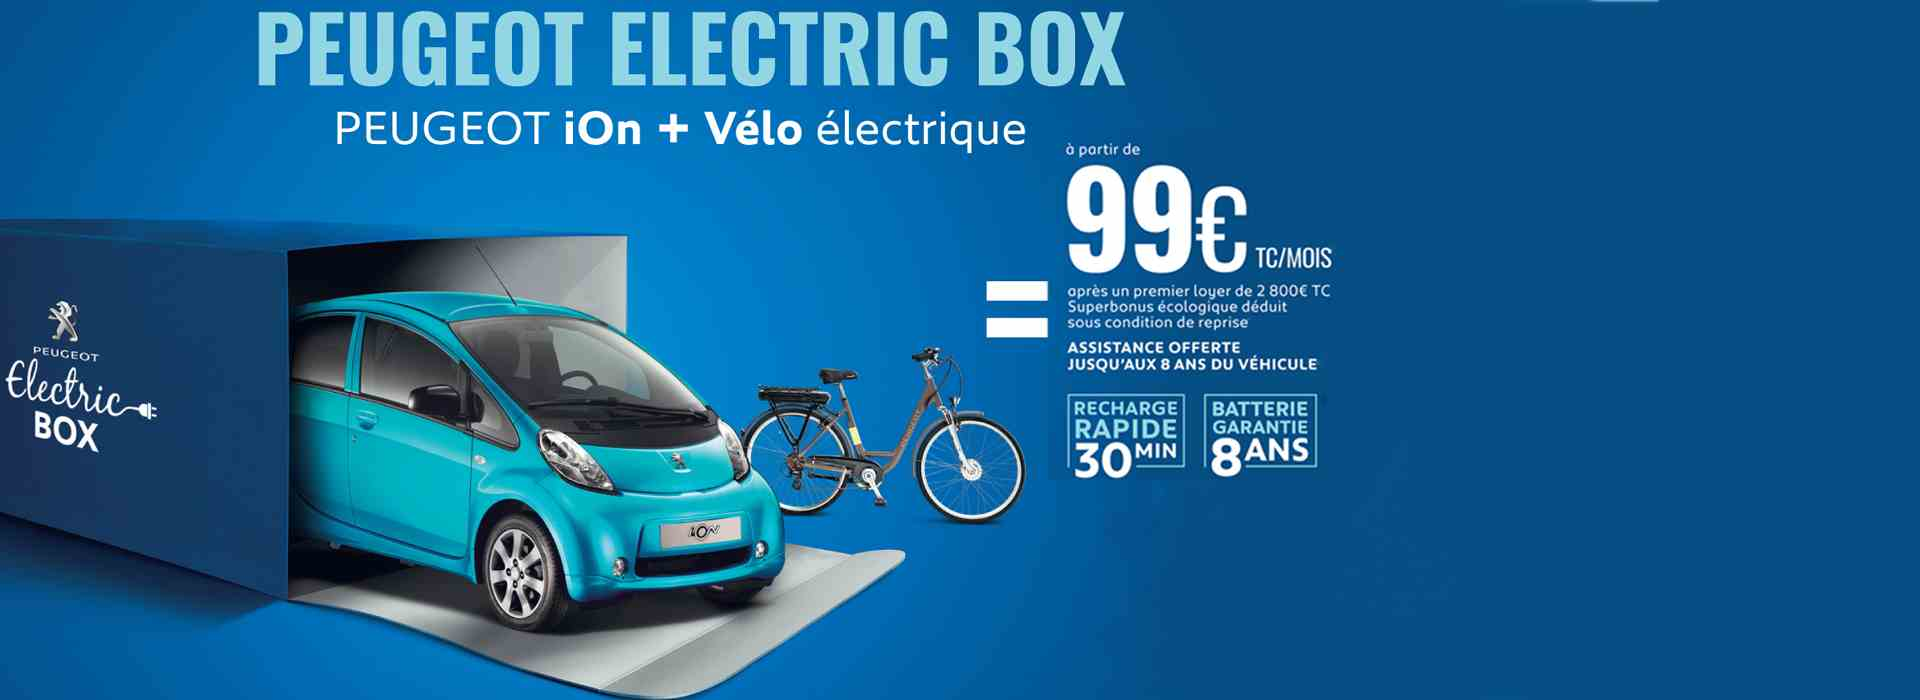 Peugeot Electric Box